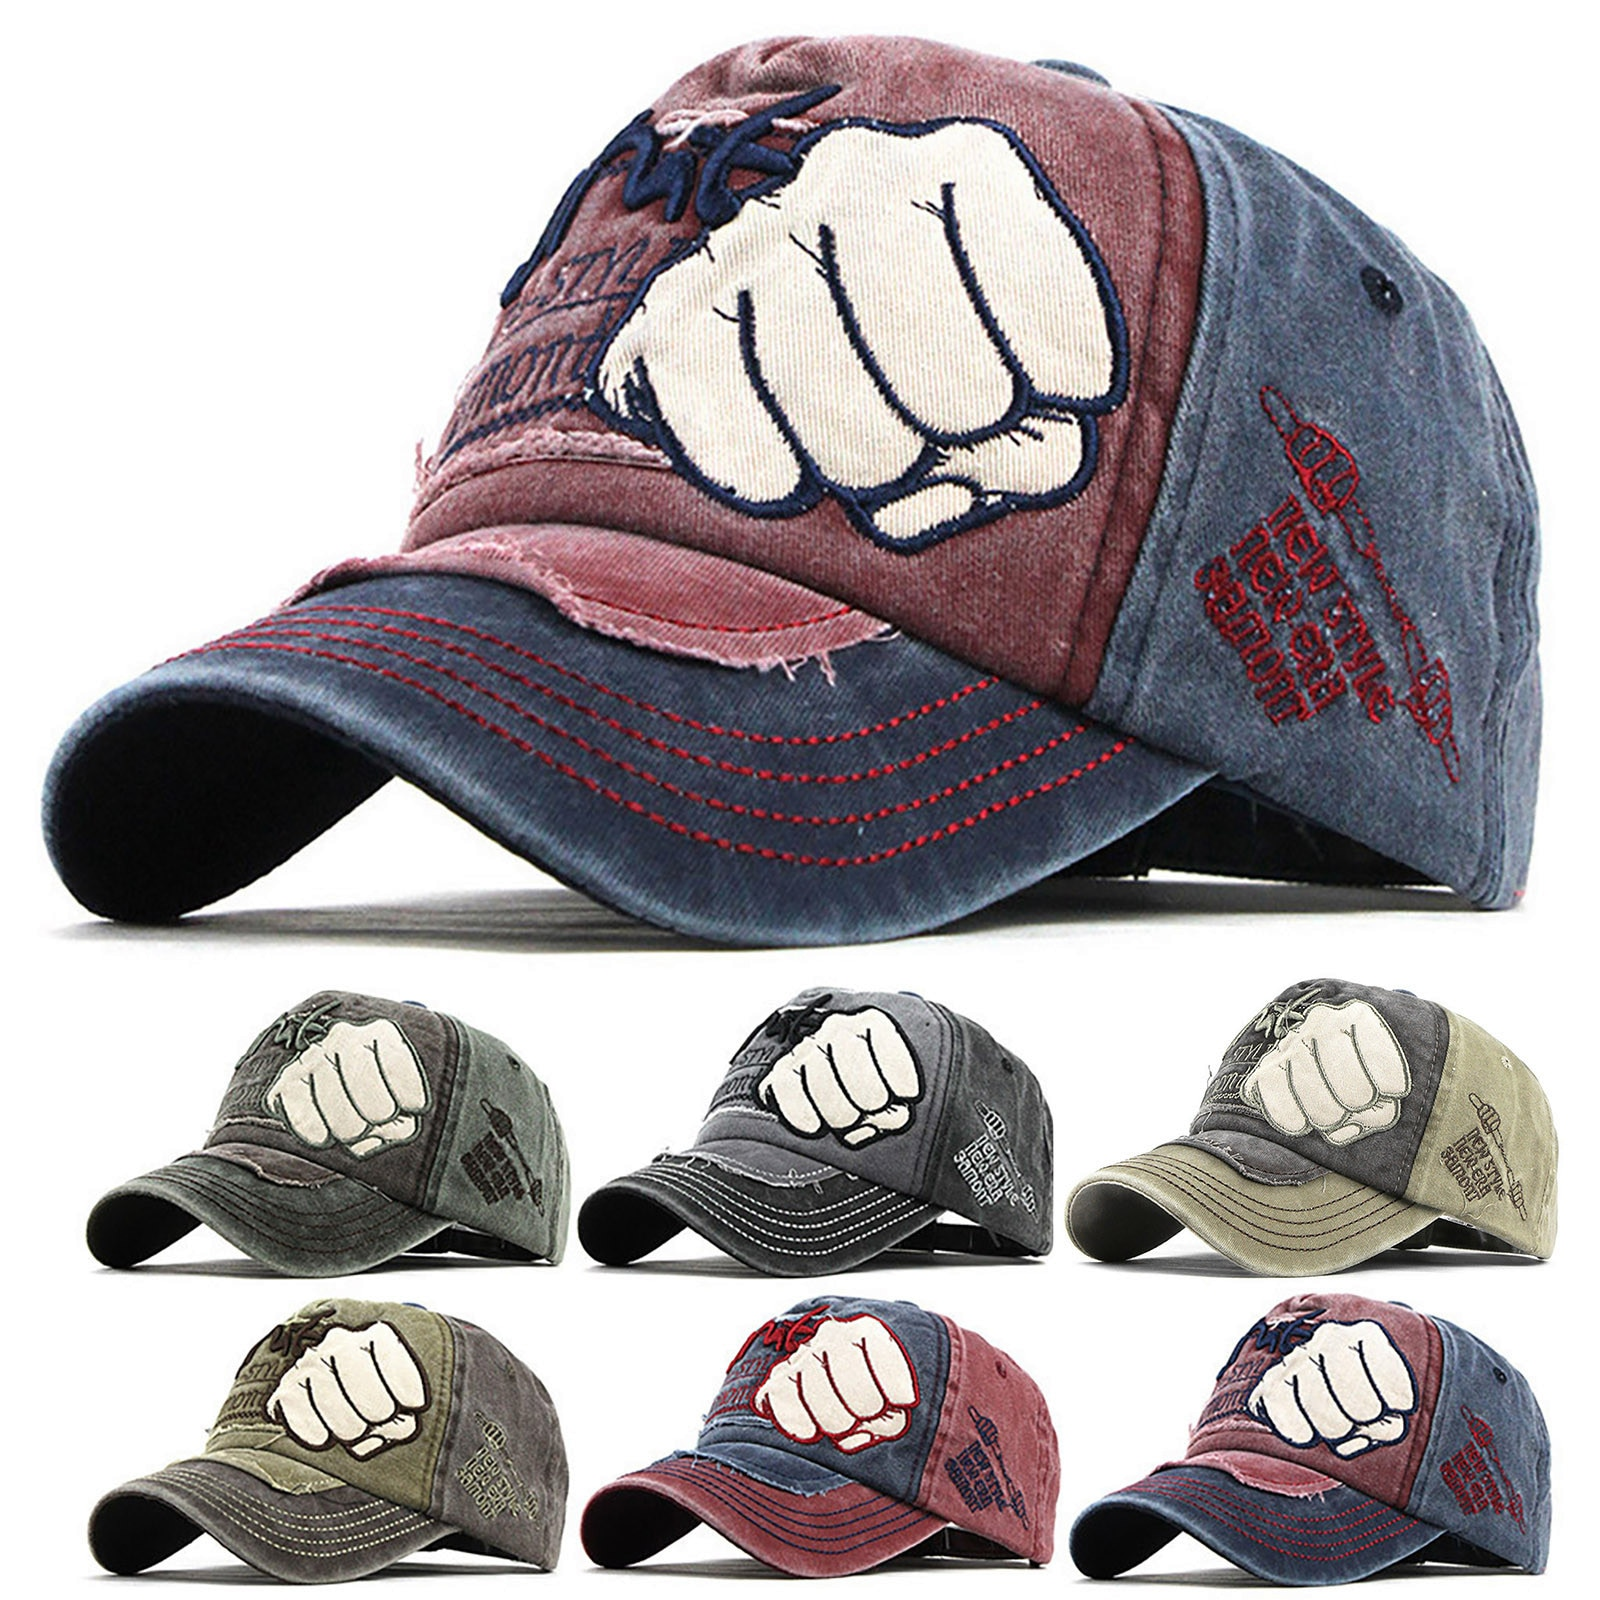 simple and stylish Unisex comfortable Outdoor Cotton Embroidered Unisex Baseball Caps Adjustable Dro